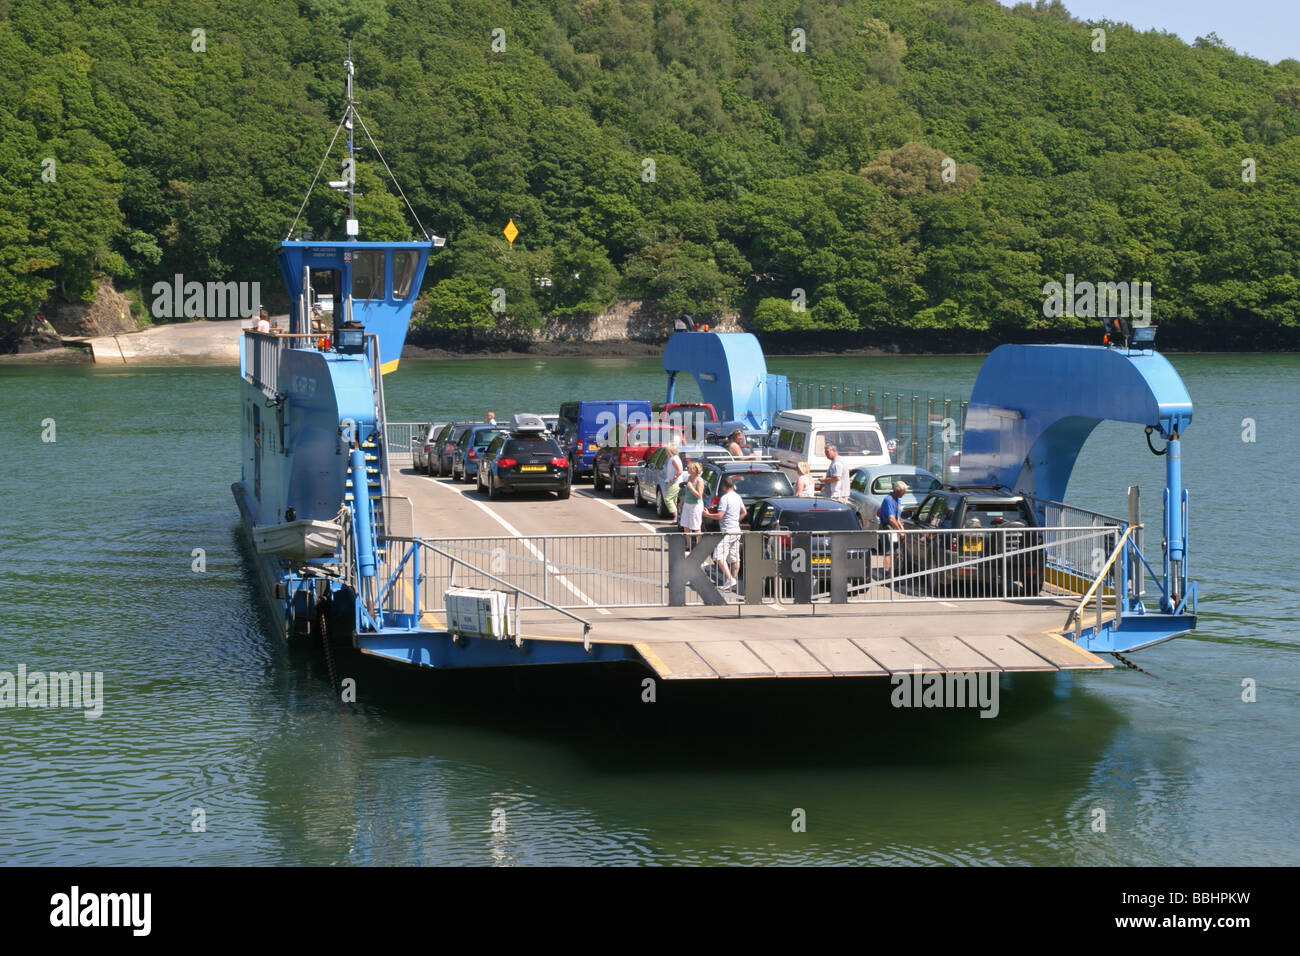 King Harry Ferry Cornwall UK Stock Photo